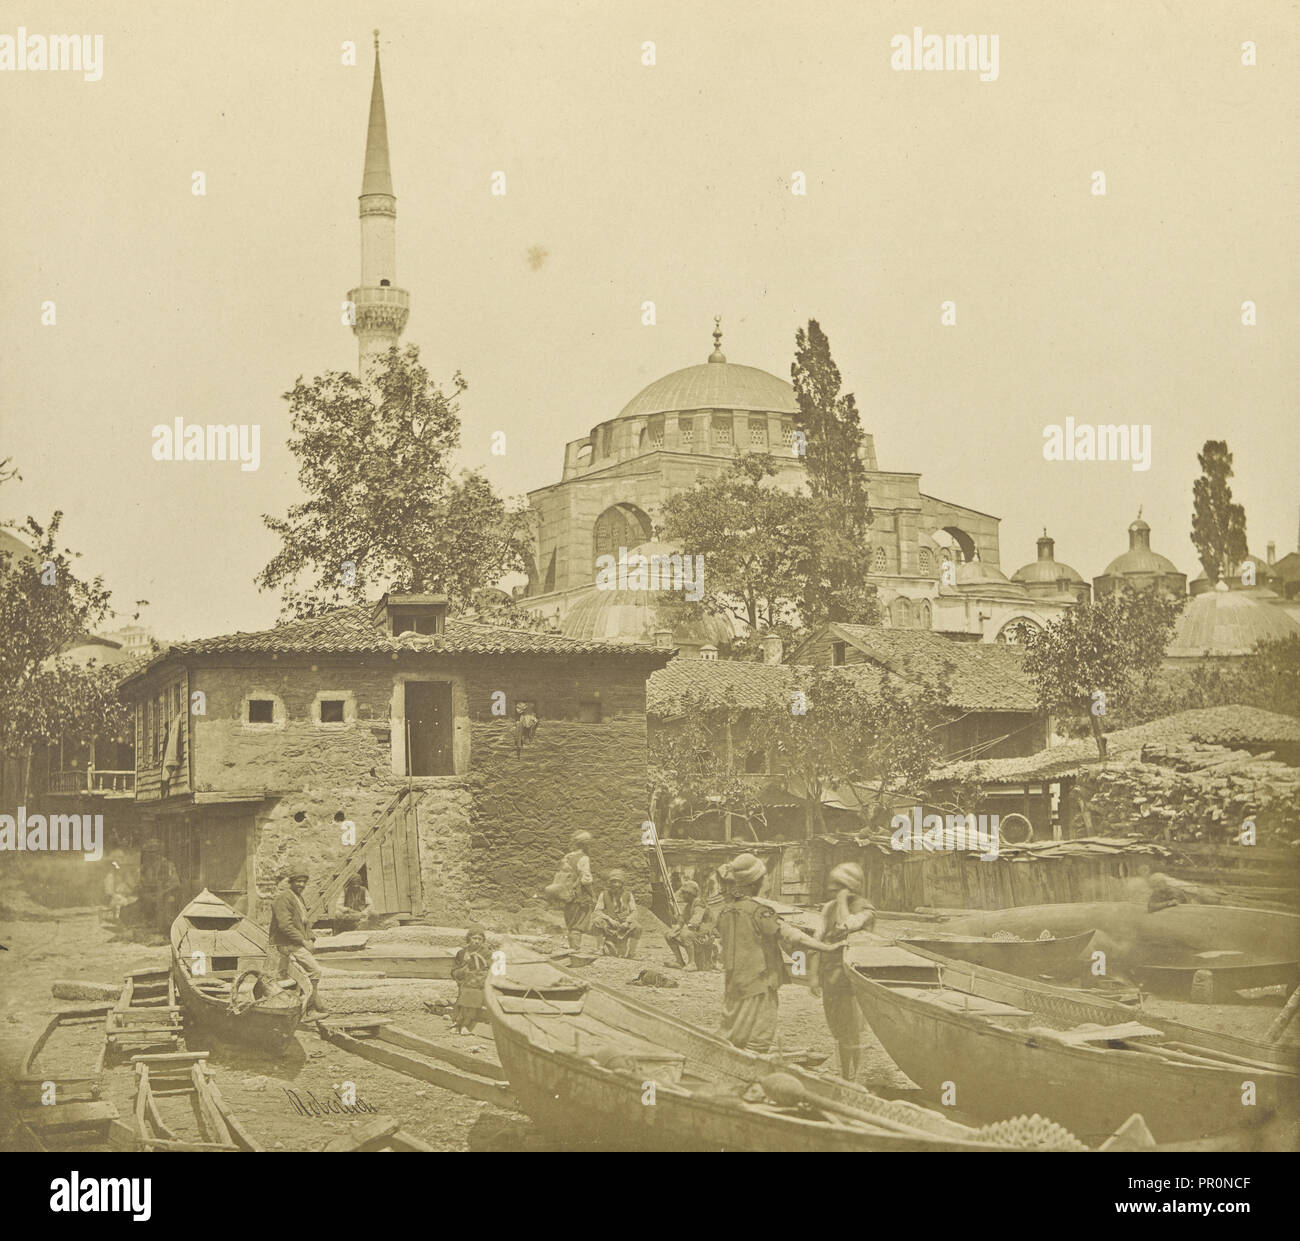 Constantinople, Istanbul; James Robertson, English, 1813 - 1888, Turkey; 1855 - 1856; Salted paper print; 26 × 29 cm - Stock Image